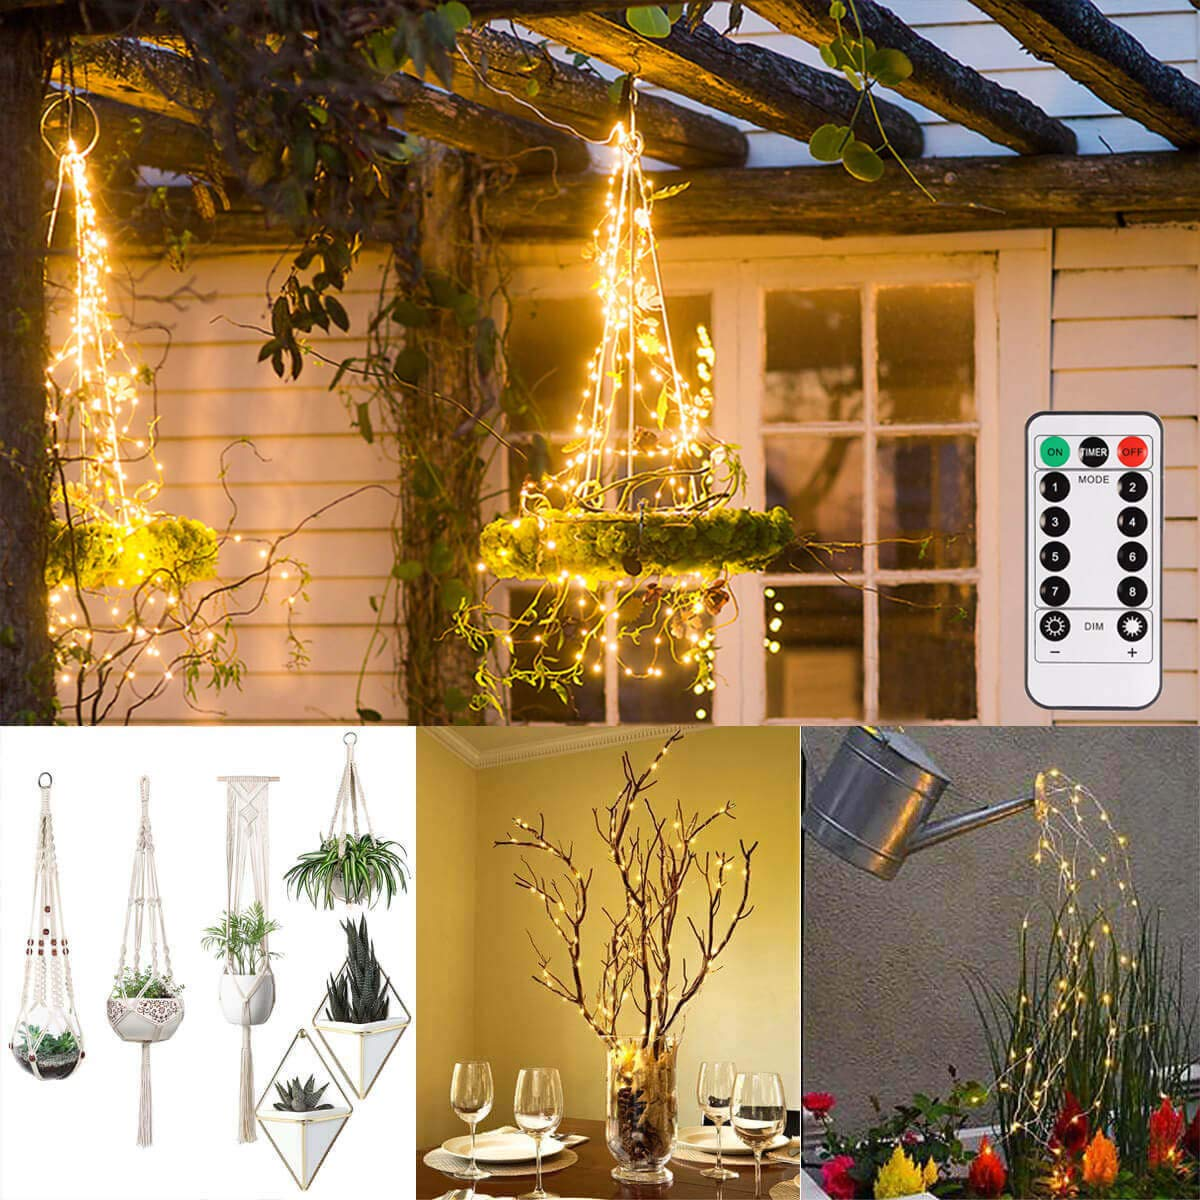 ALOVECO Battery Operated String Lights 2 Pack with Remote Timer, 200 LED Fairy Hanging String Lights Decorative Lighting for Christmas Tree, Garden Plant Hanger, Dorm, Wedding, Party, Bedroom